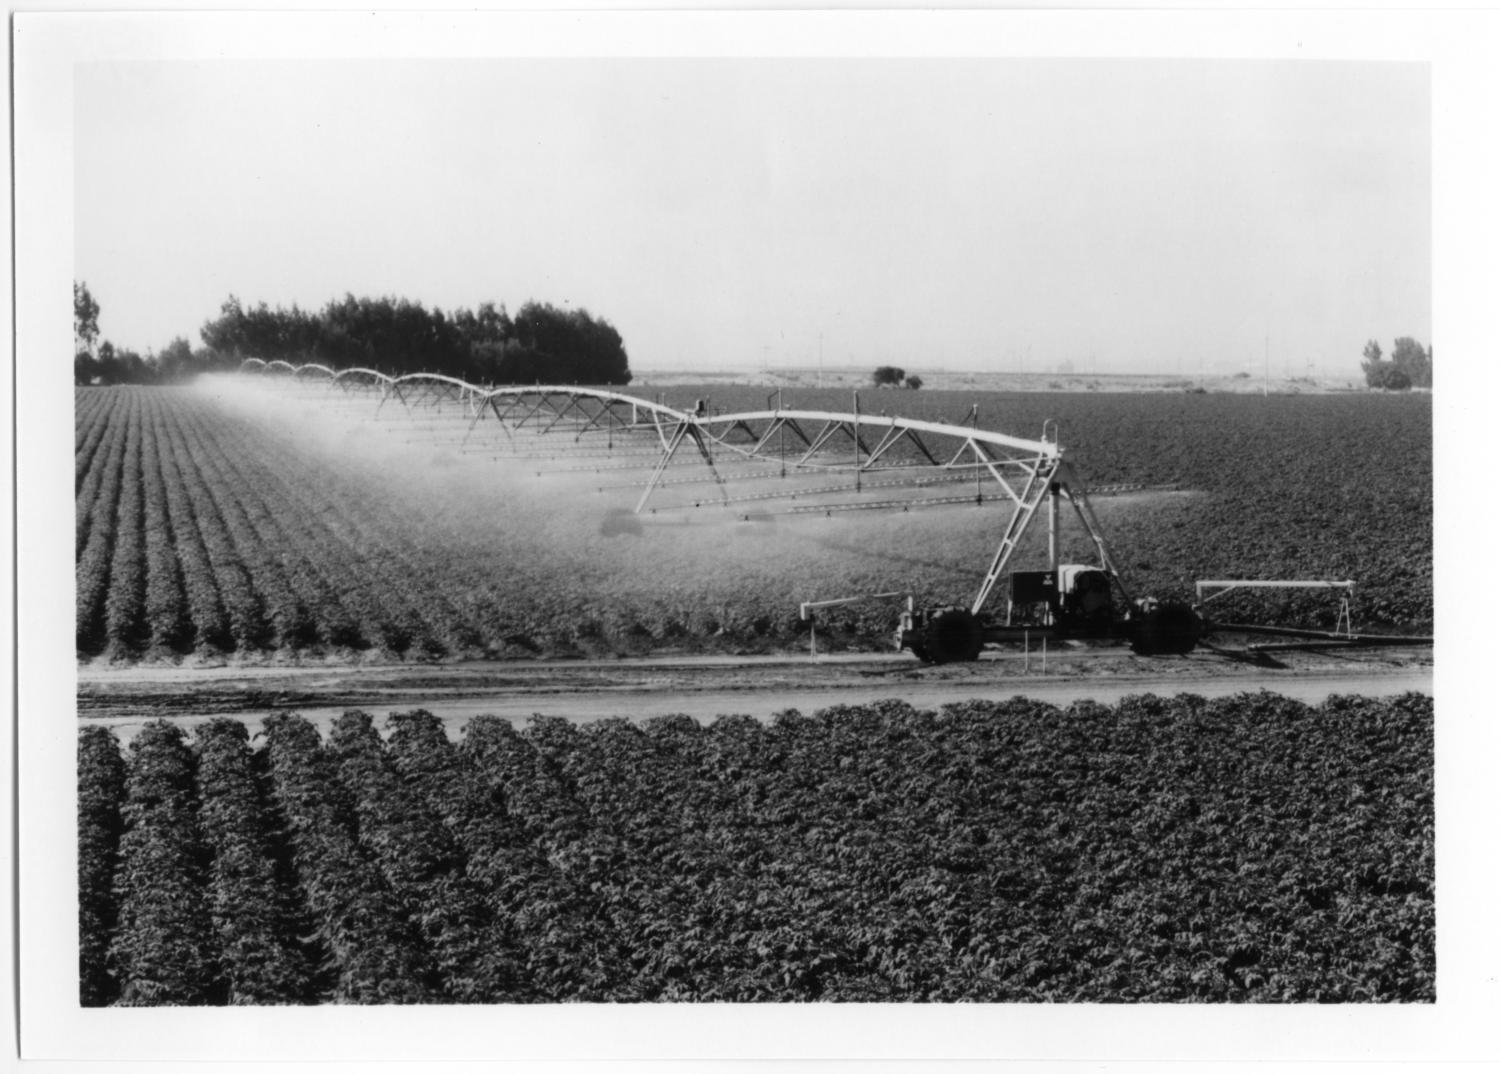 Irrigation Sprinklers Over Crops                                                                                                      [Sequence #]: 1 of 1